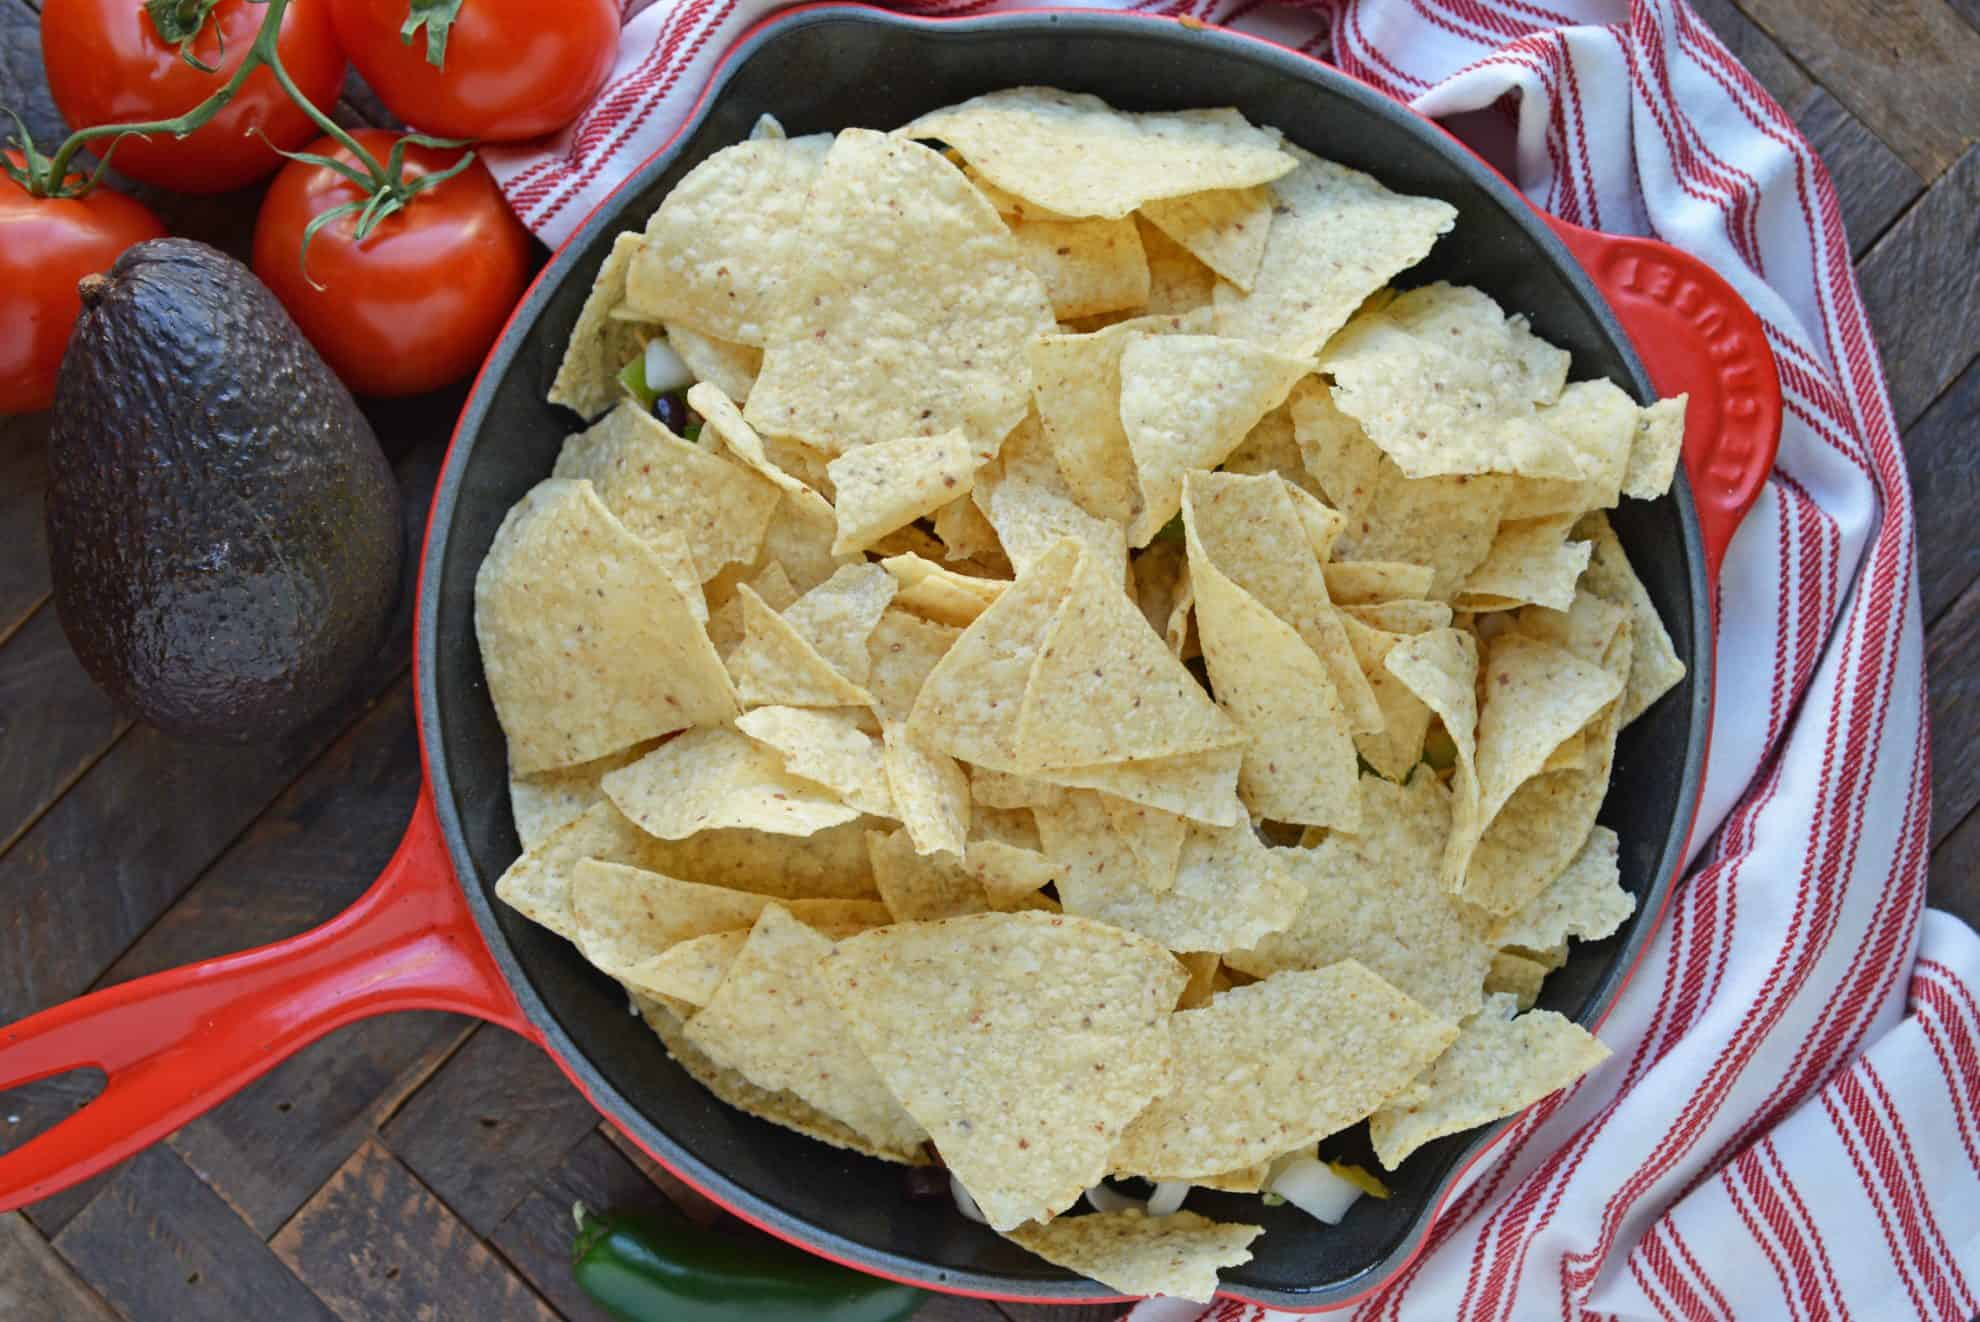 Layer nachos with more chips